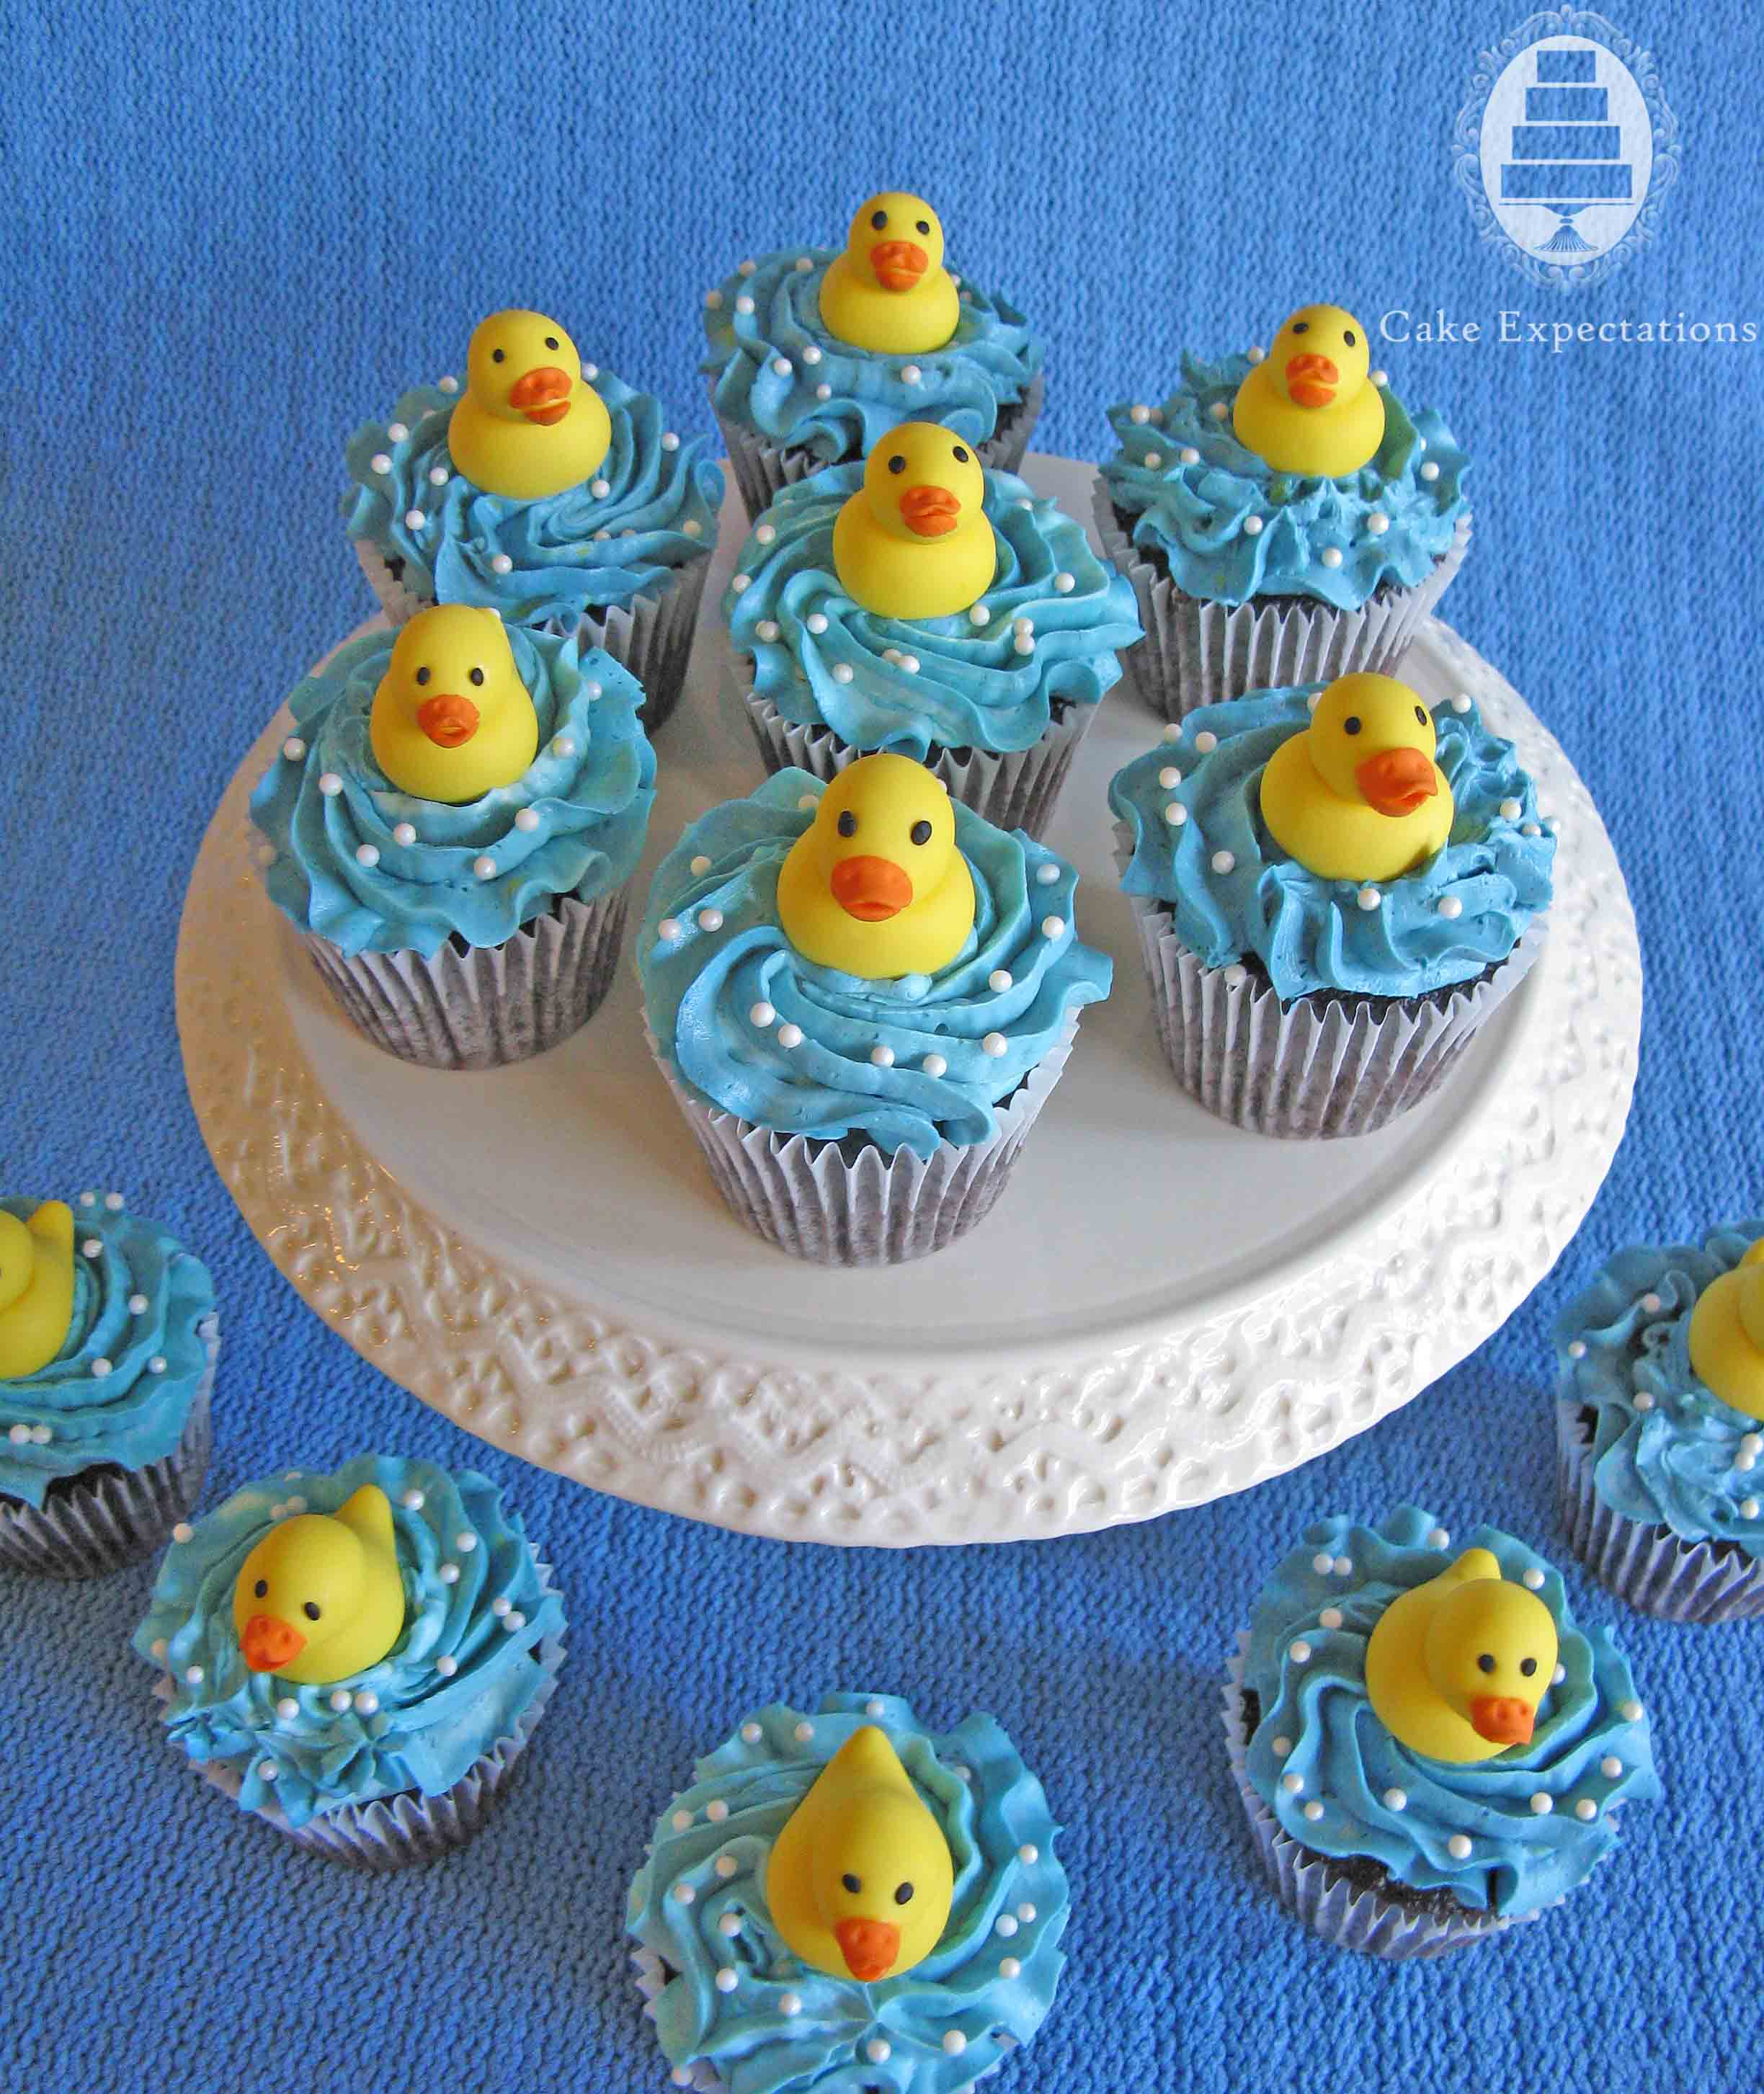 13 Rubber Ducky Baby Shower For Cupcakes And Cakes Photo Just